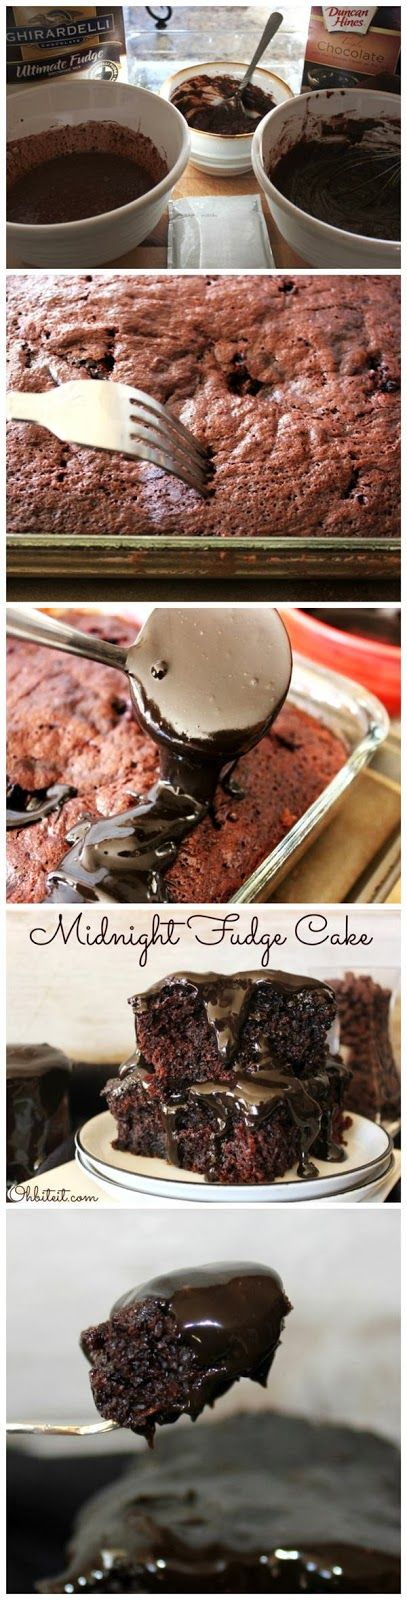 Red Star Recipe: Midnight Fudge Cake